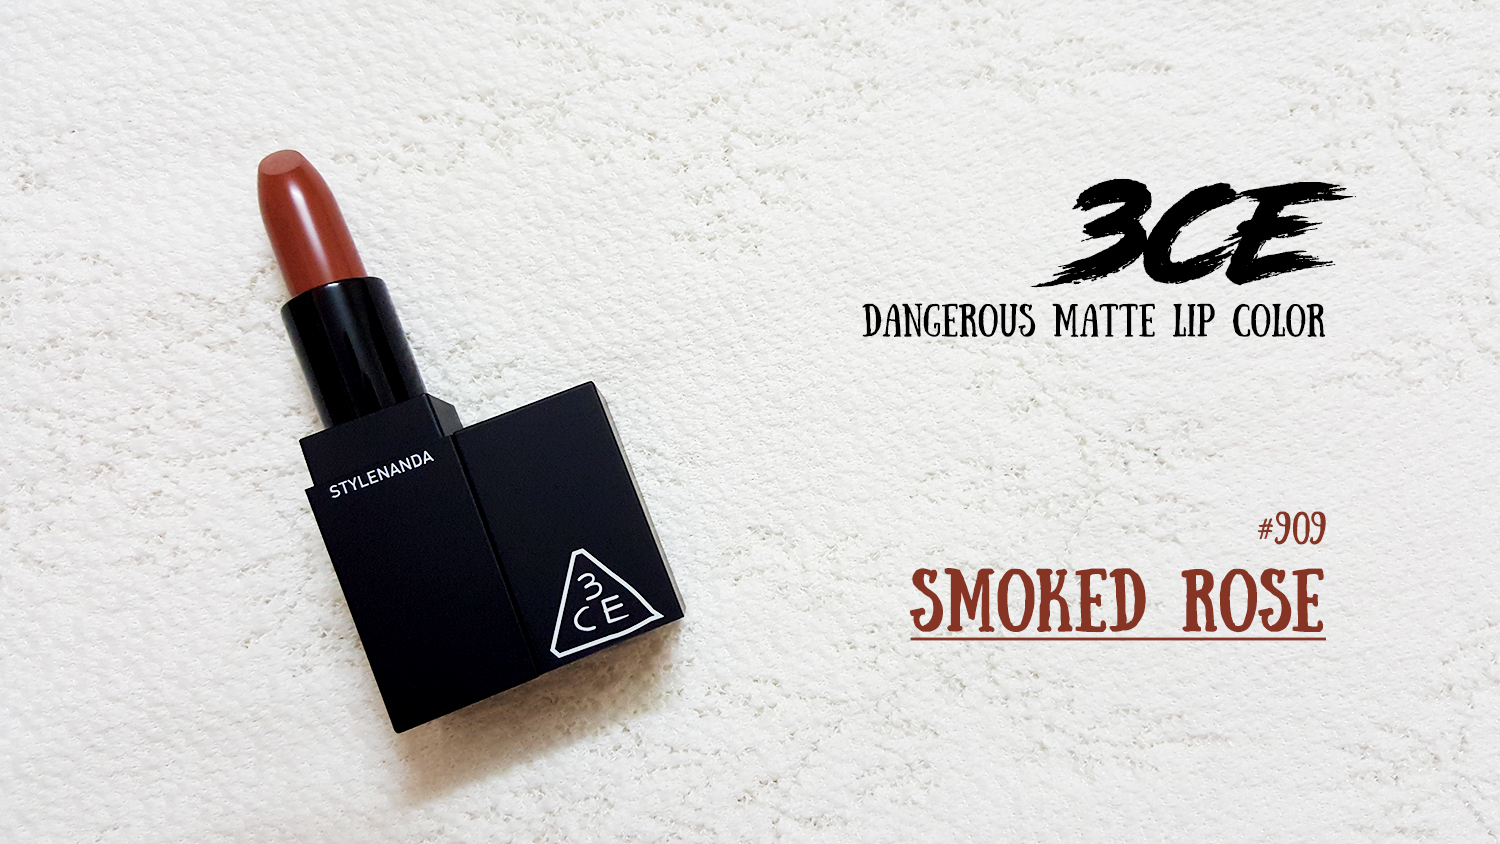 3CE MATTE LIP COLOR #909 SMOKED ROSE